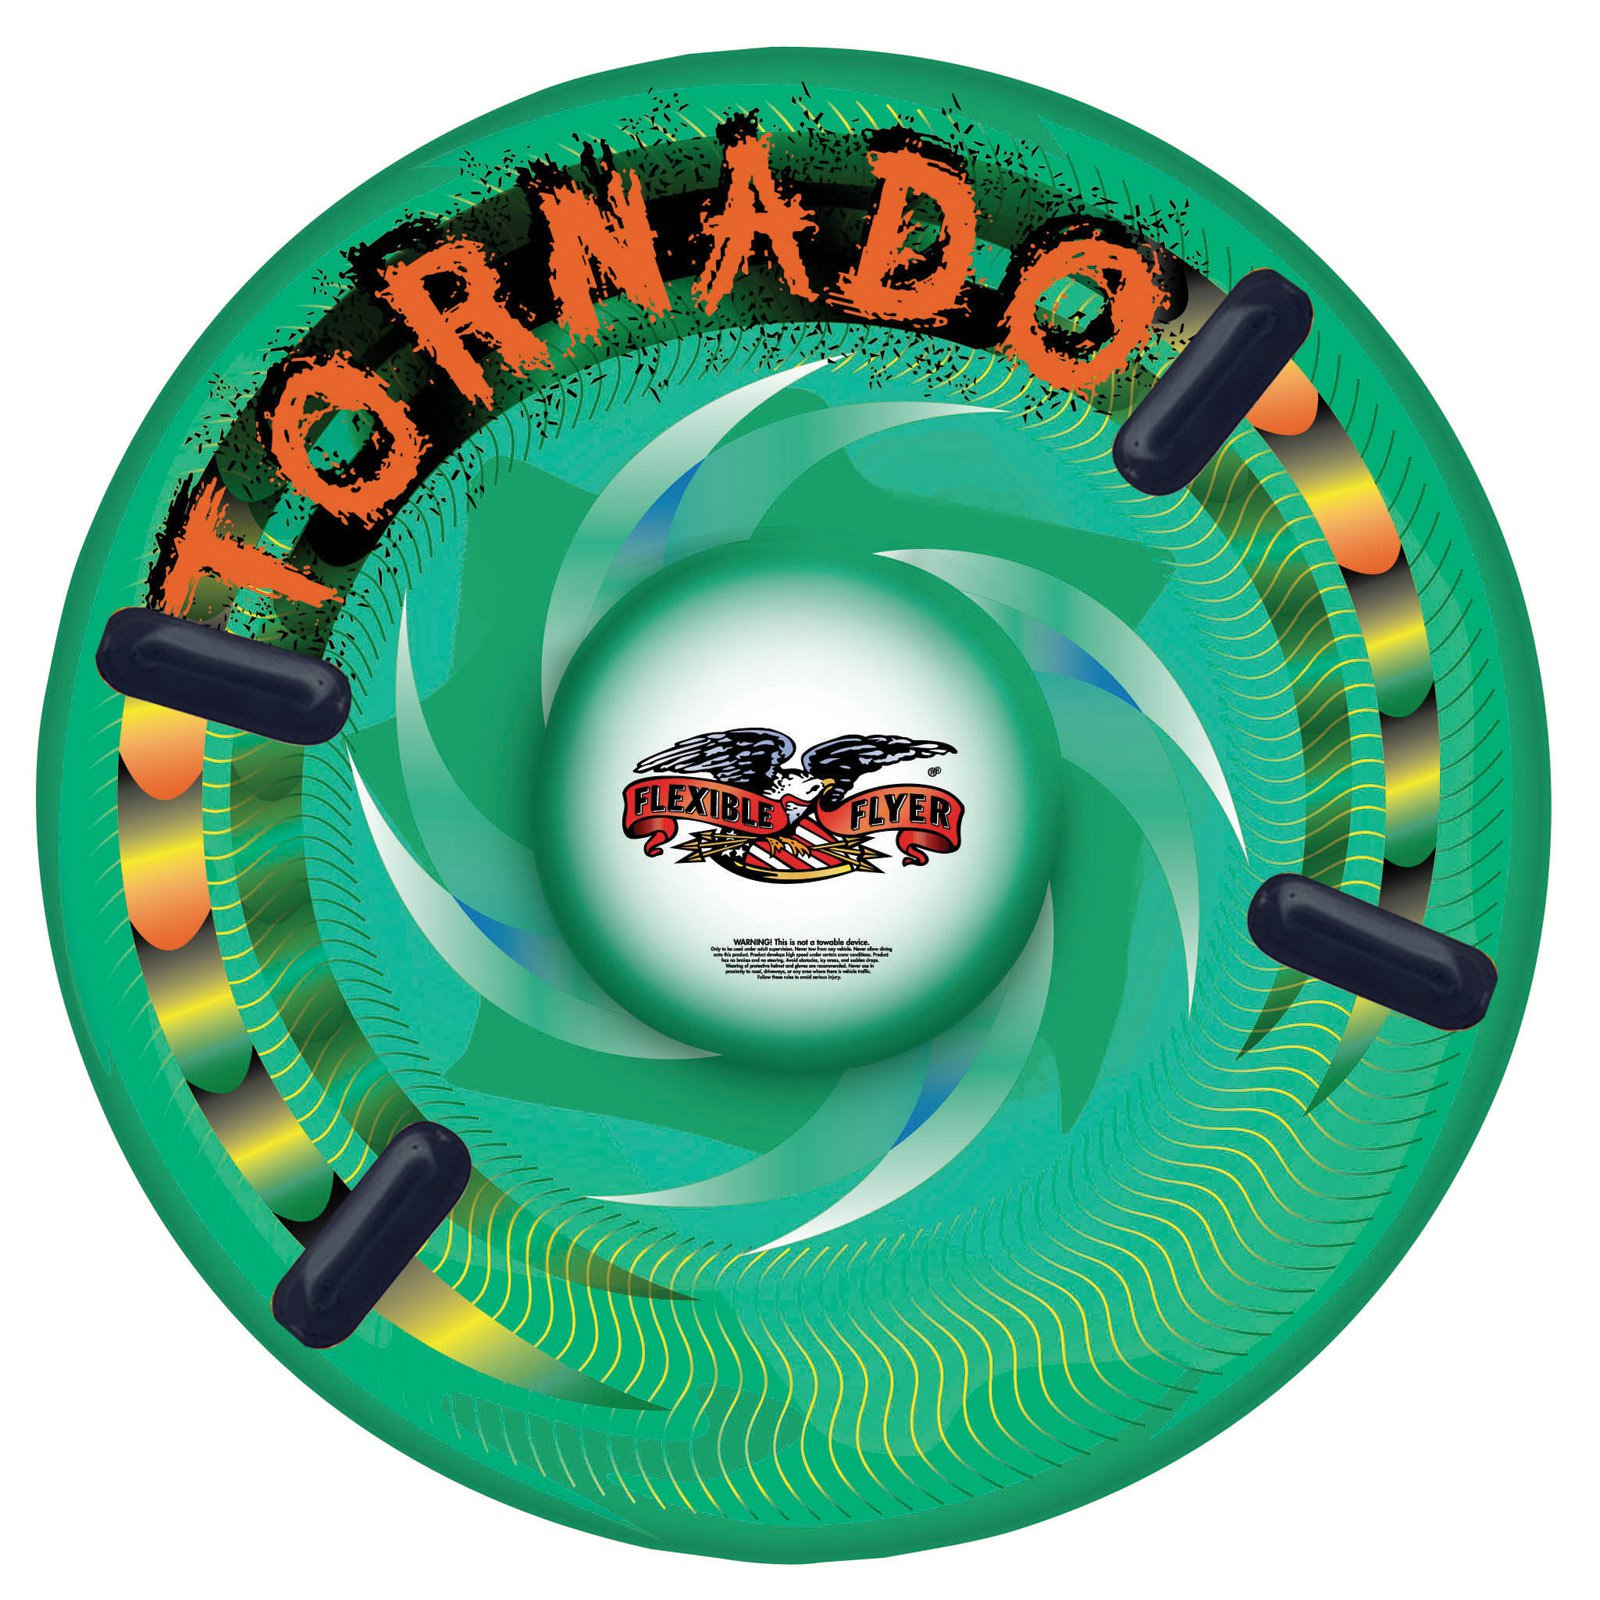 "Paricon 50"" Tornado Snow Tube by Flexible Flyer"